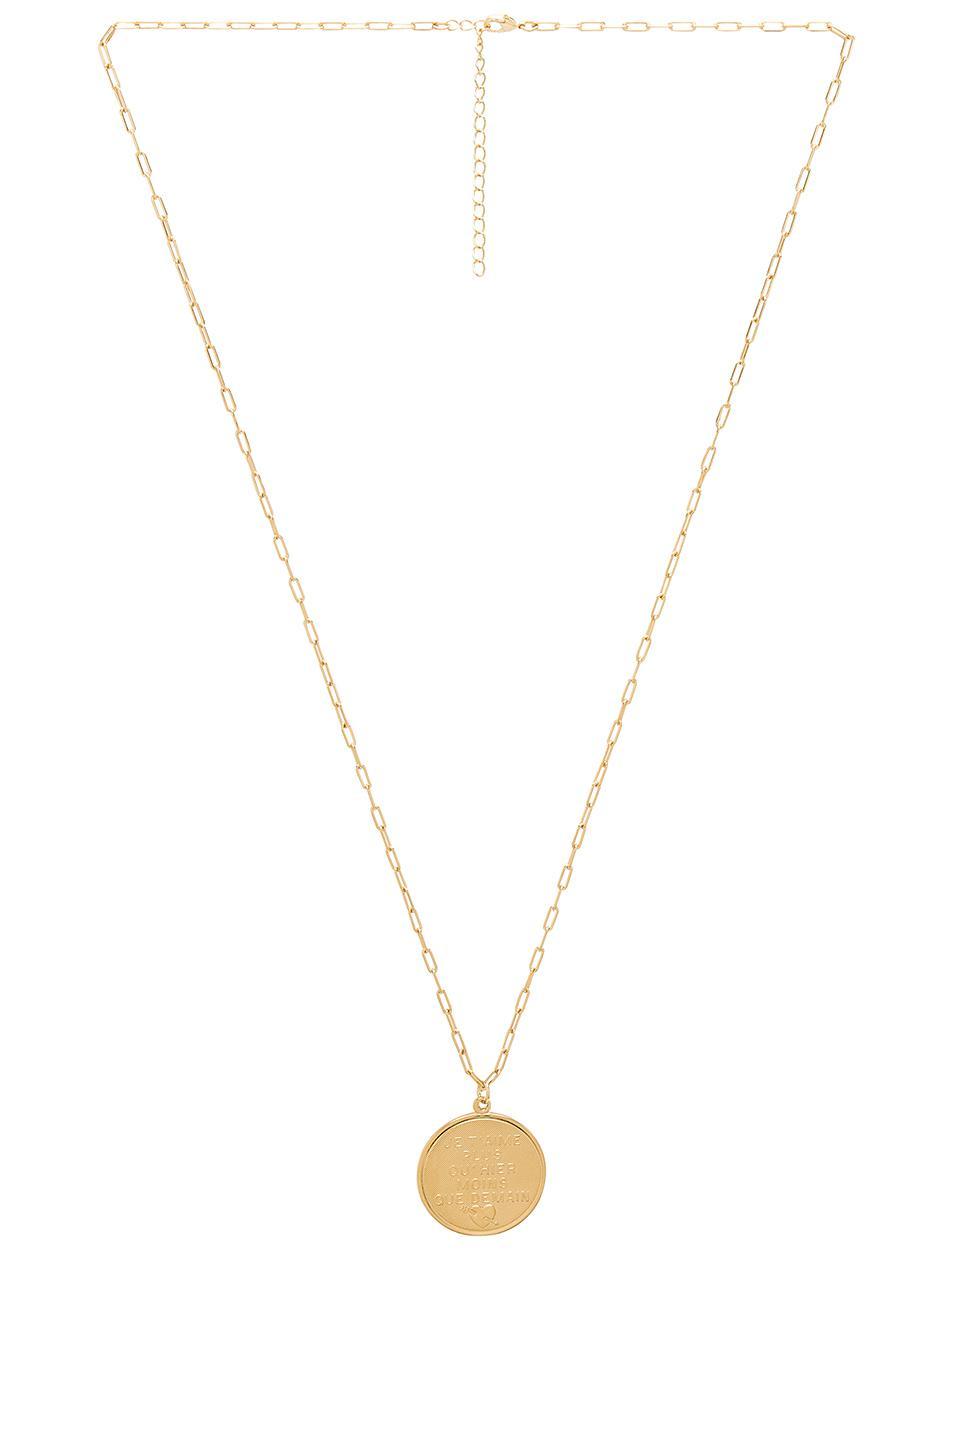 Joolz by Martha Calvo French Quote Disc Necklace In Metallic Gold.